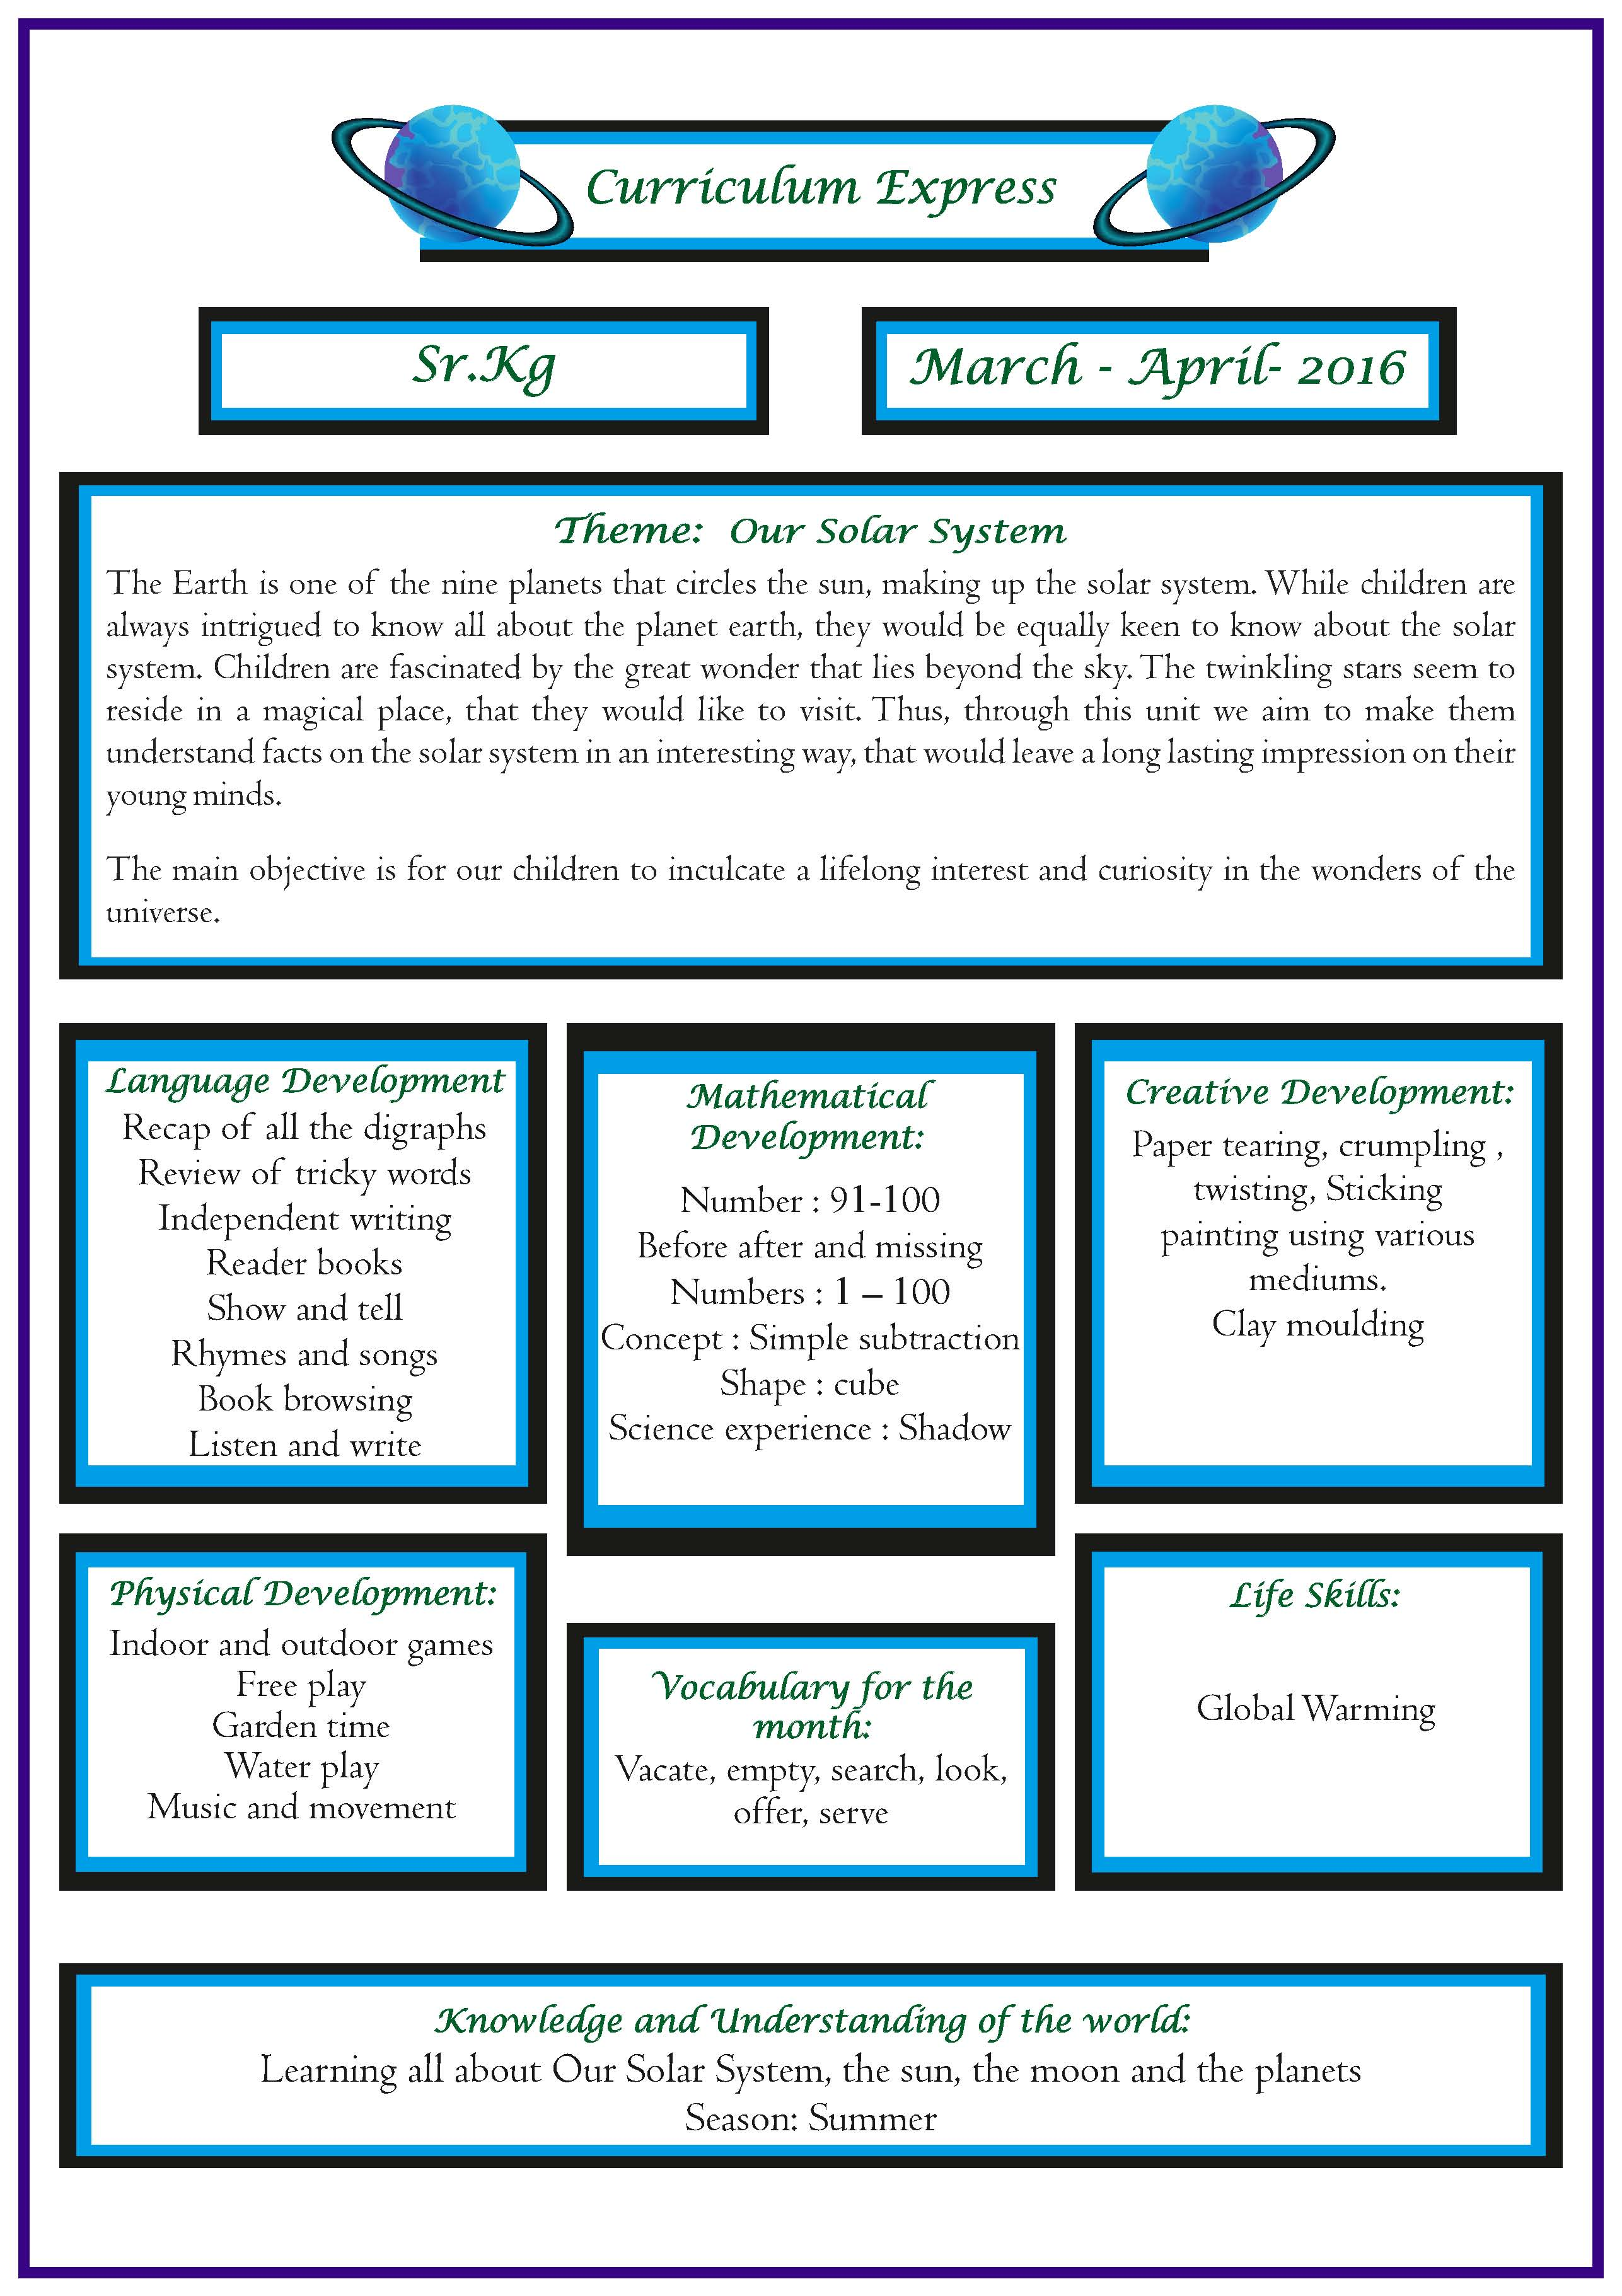 Curriculum Express For The Month Of March April Sr